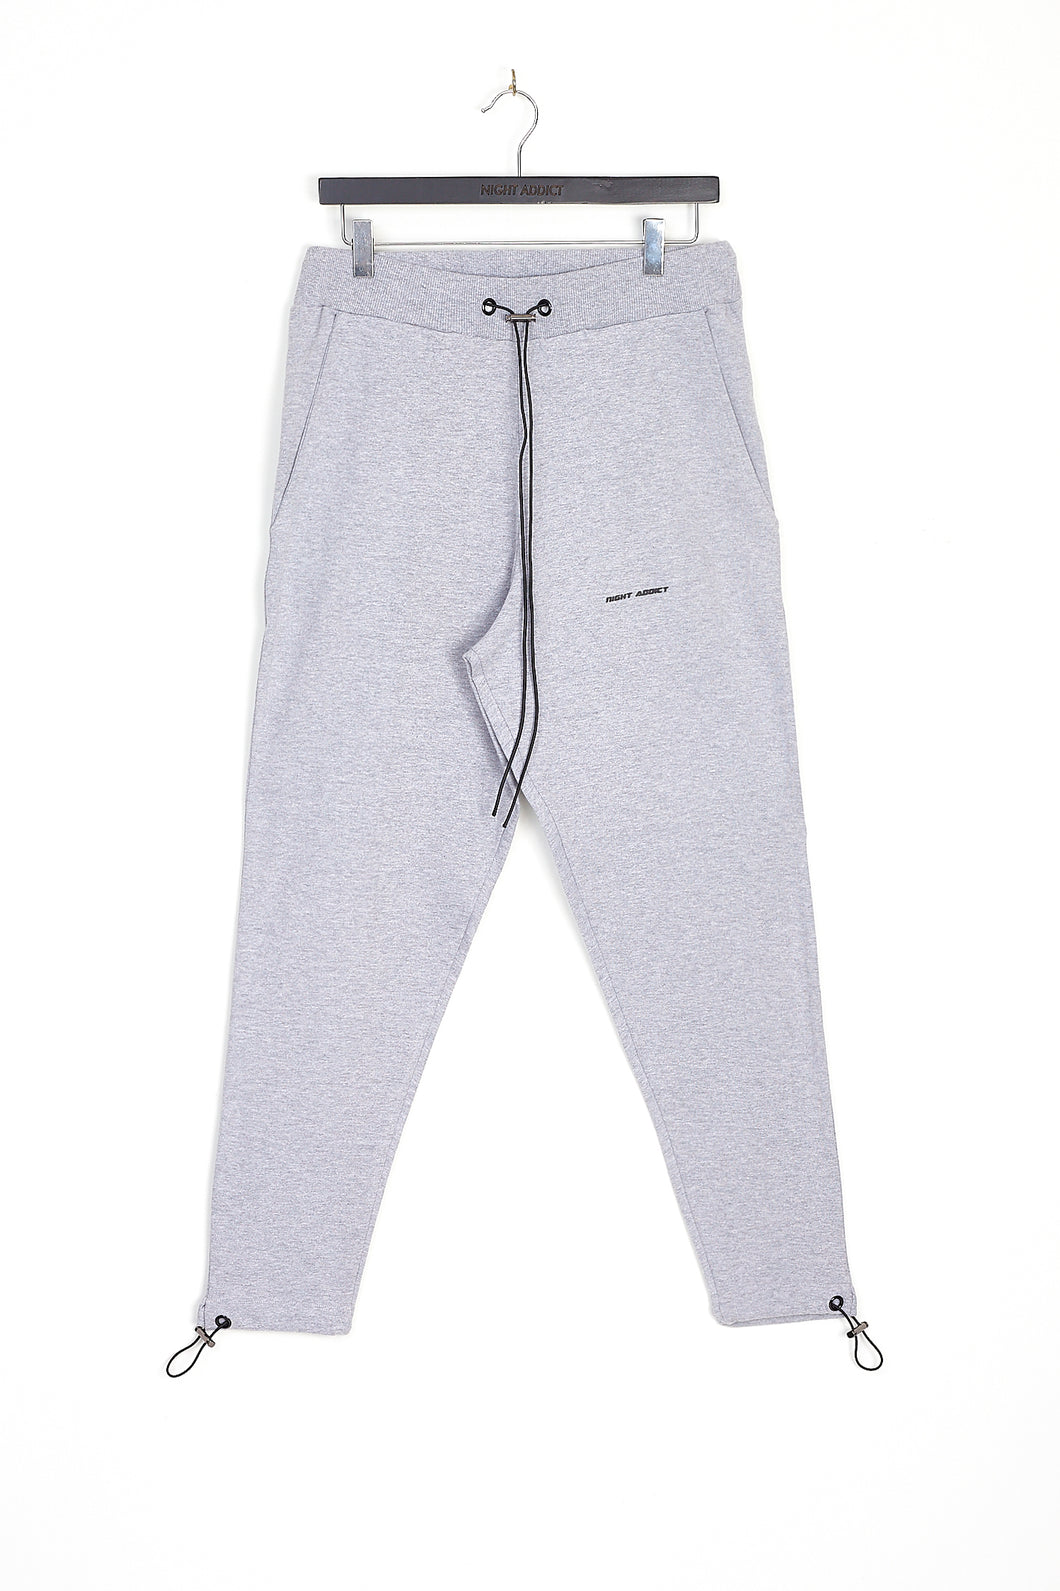 NIGHT ADDICT GREY CORE JOGGER FRONT